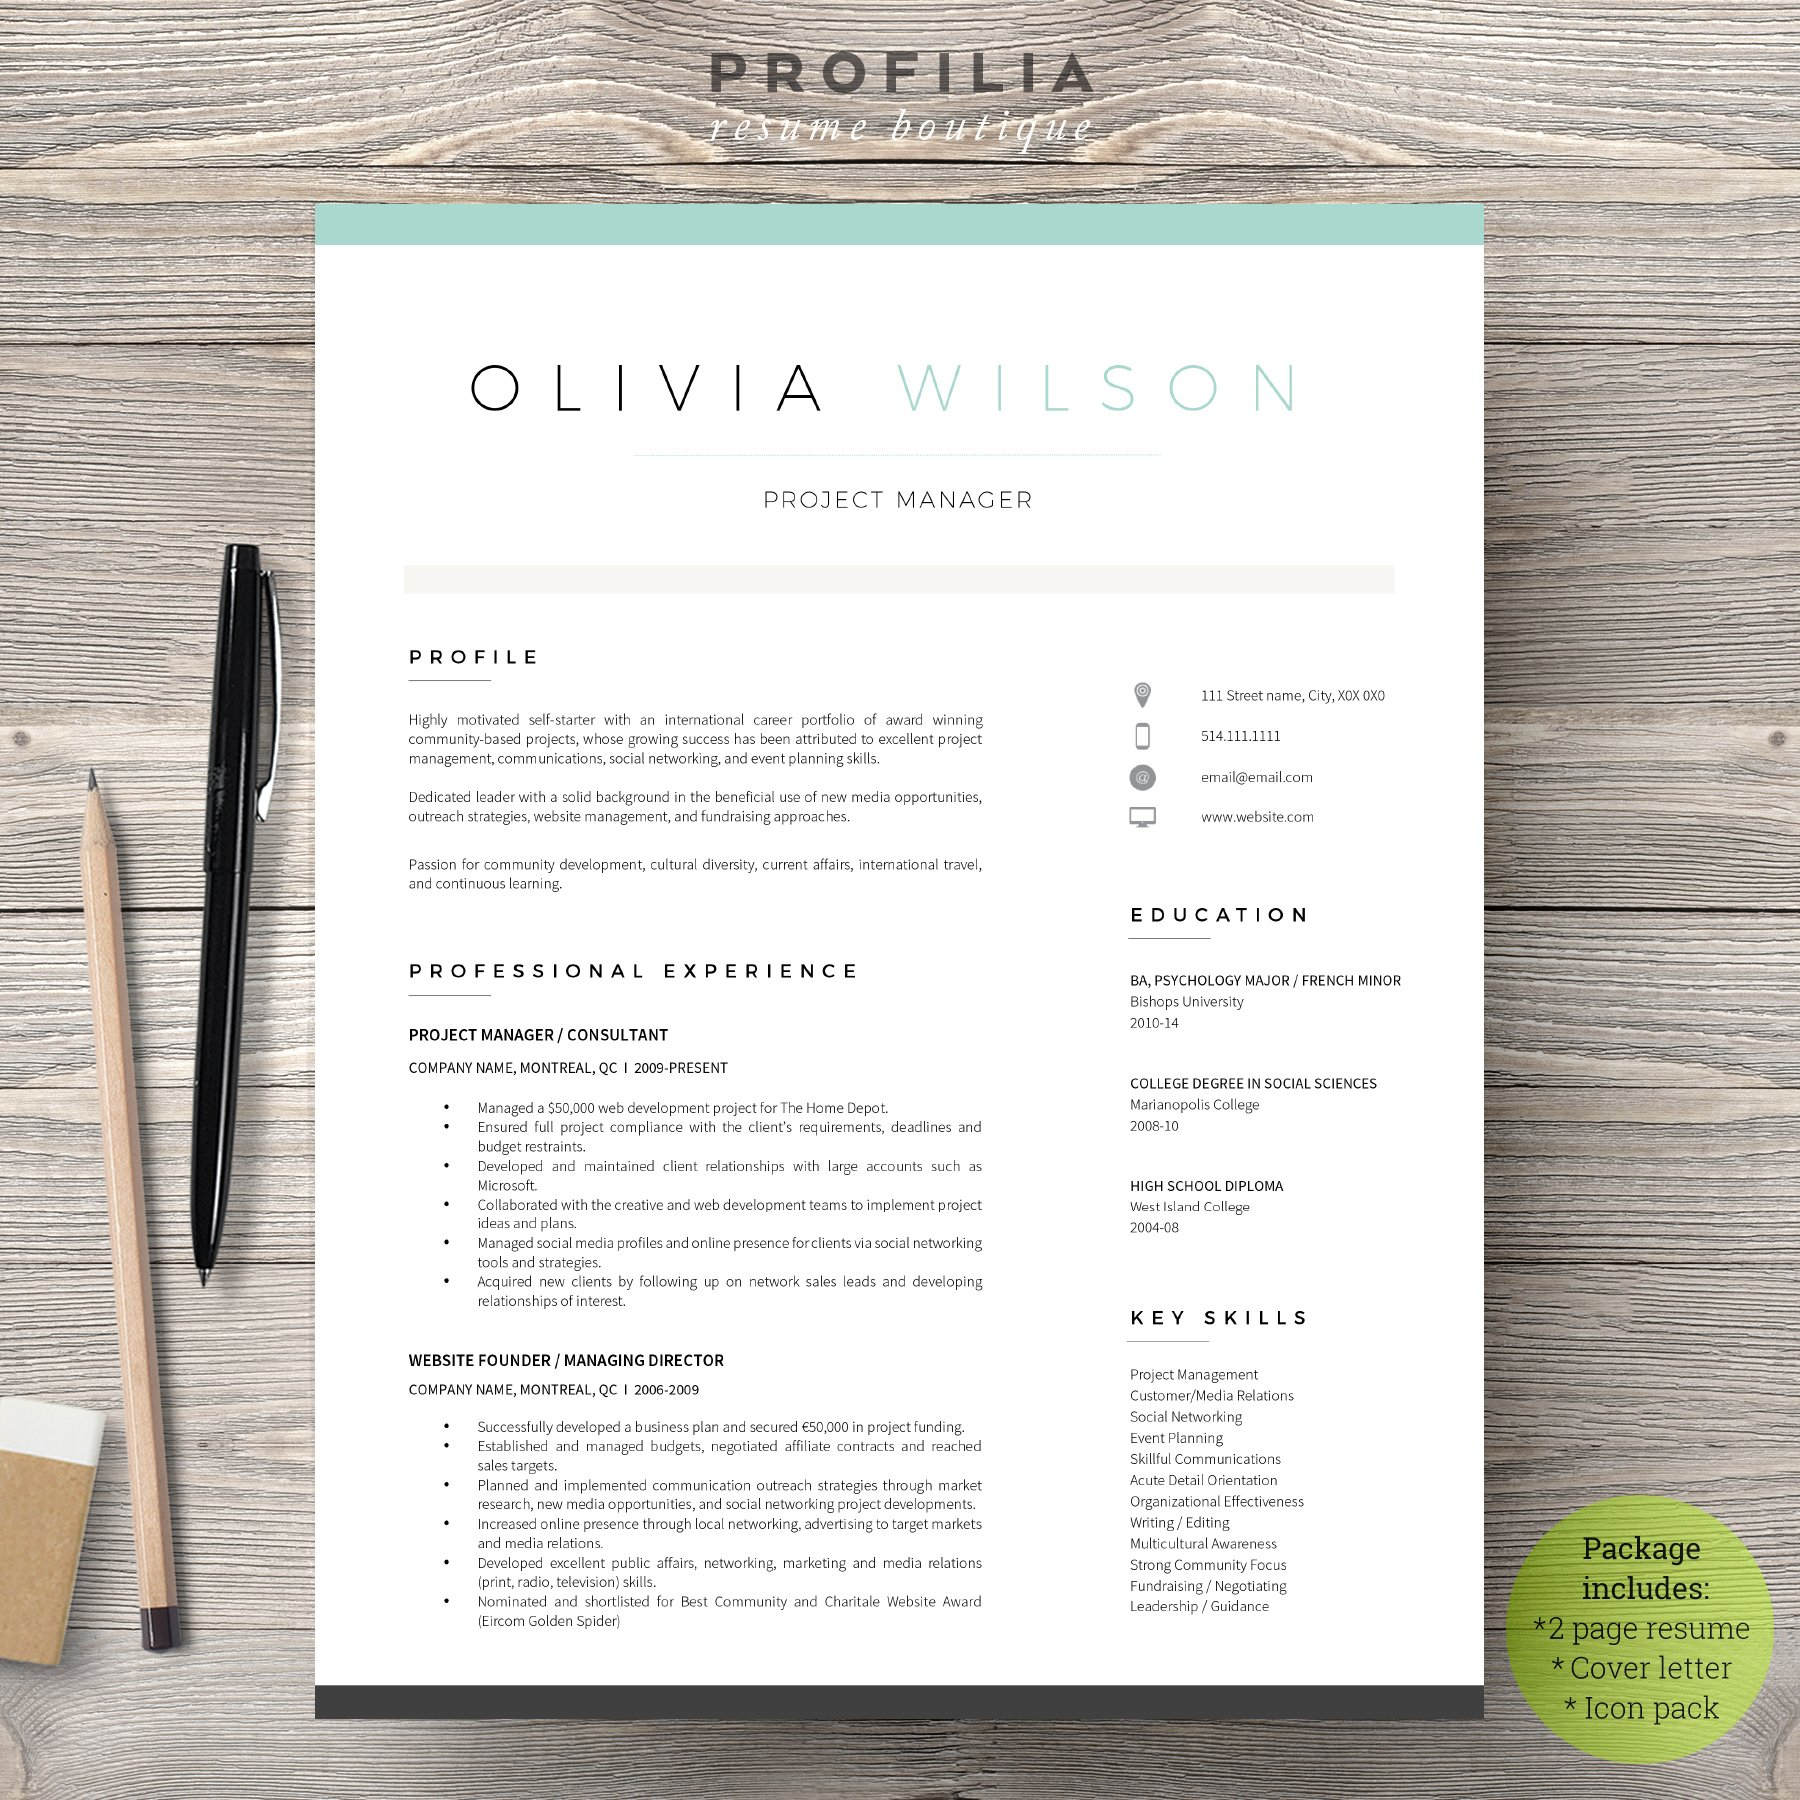 word resume cover letter template resume templates creative market - Free Resume And Cover Letter Templates